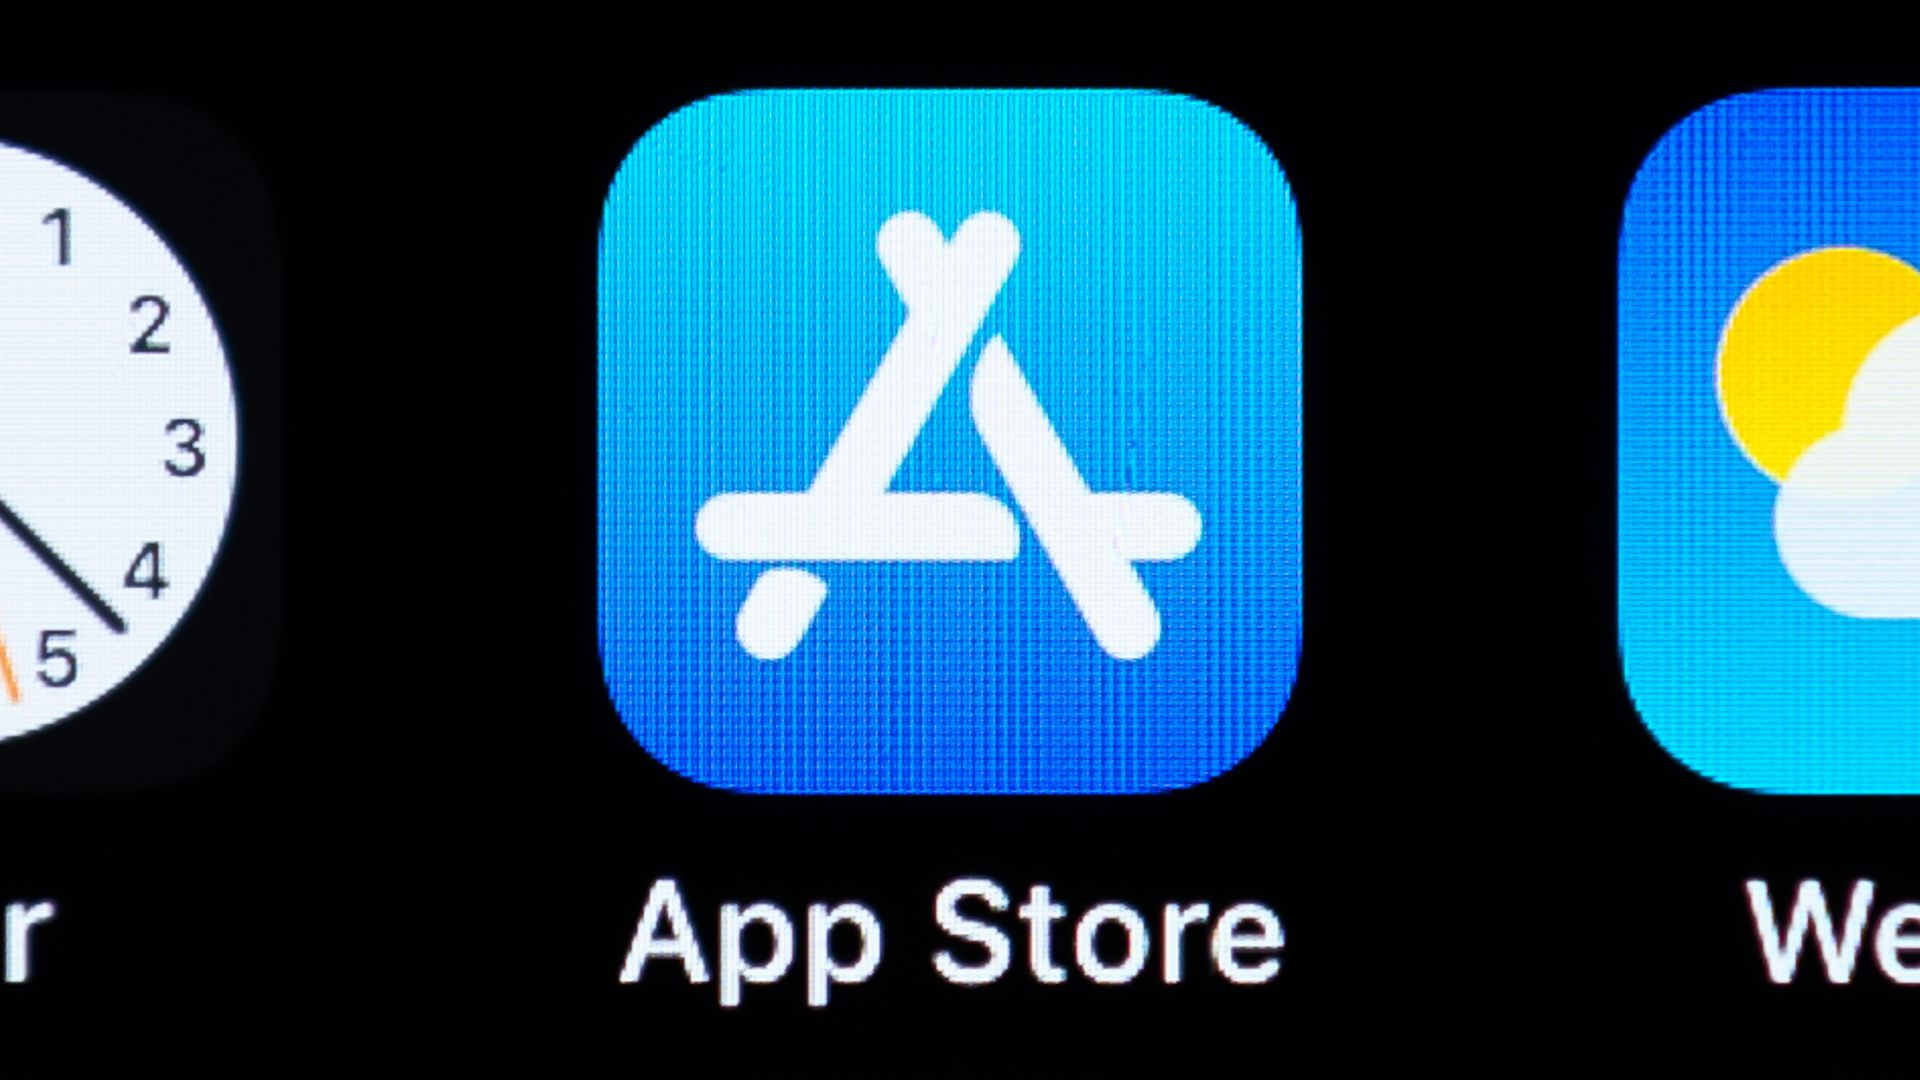 This image is a close-up of the App Store application on an iPhone.